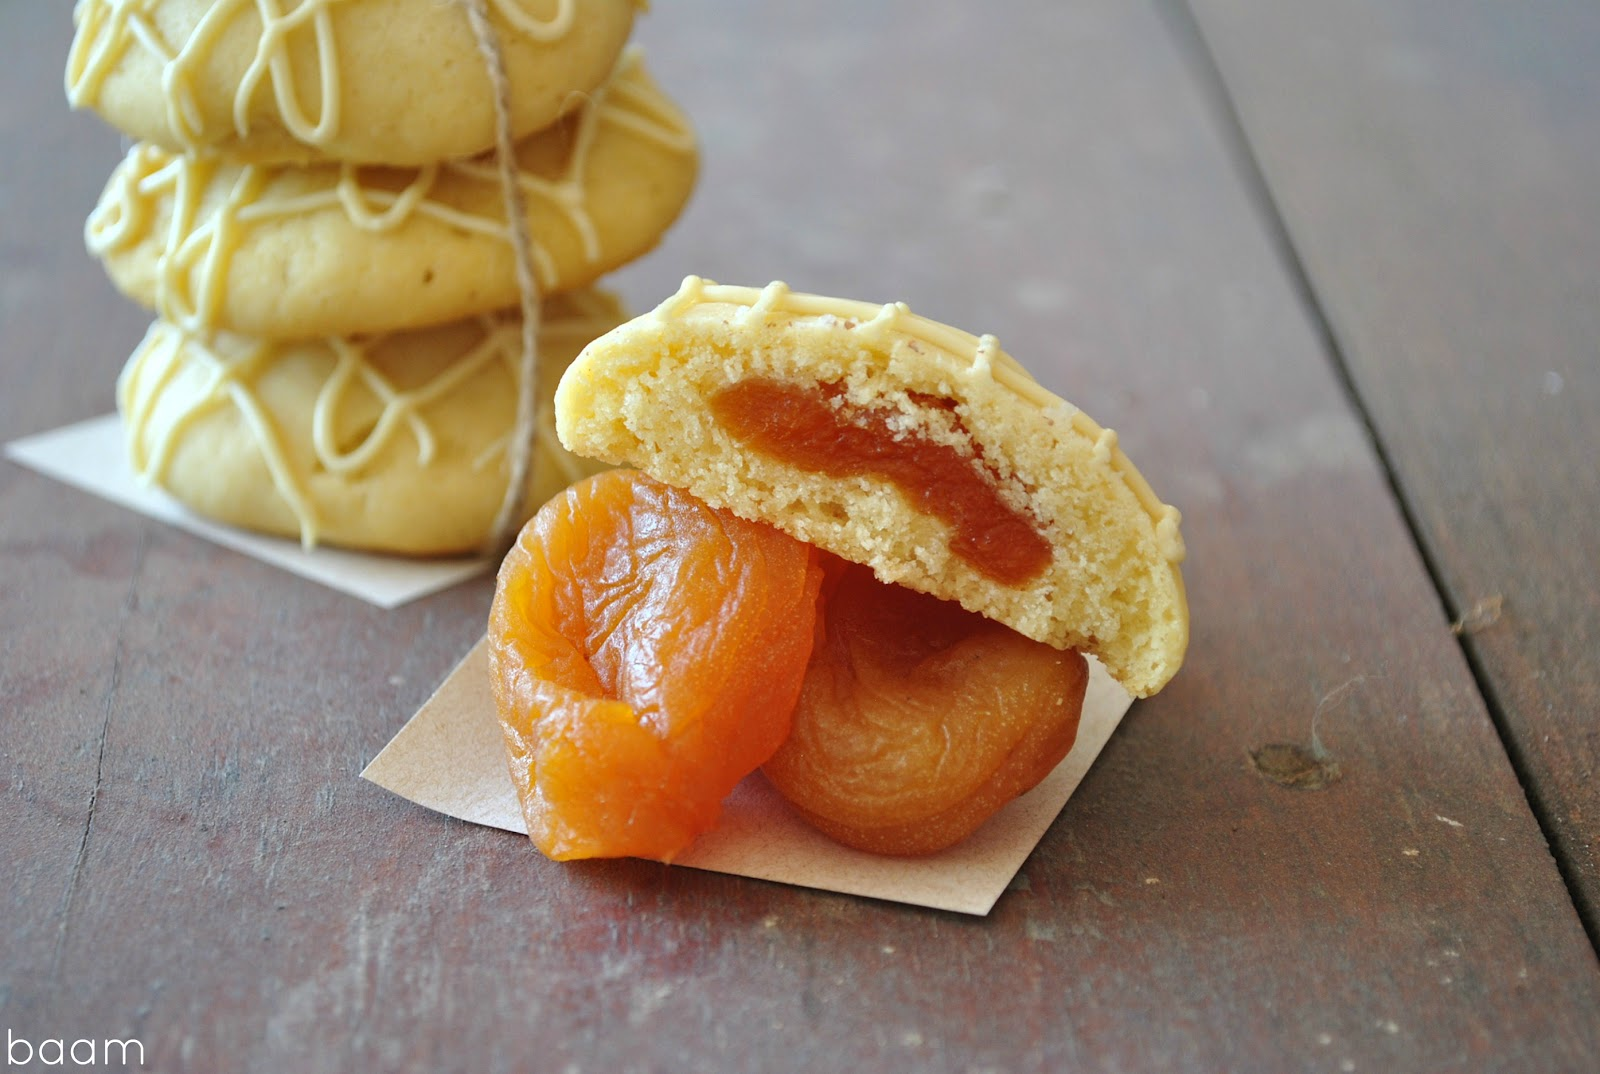 ... love stuffed cookies like these ones, which are your favorite cookies